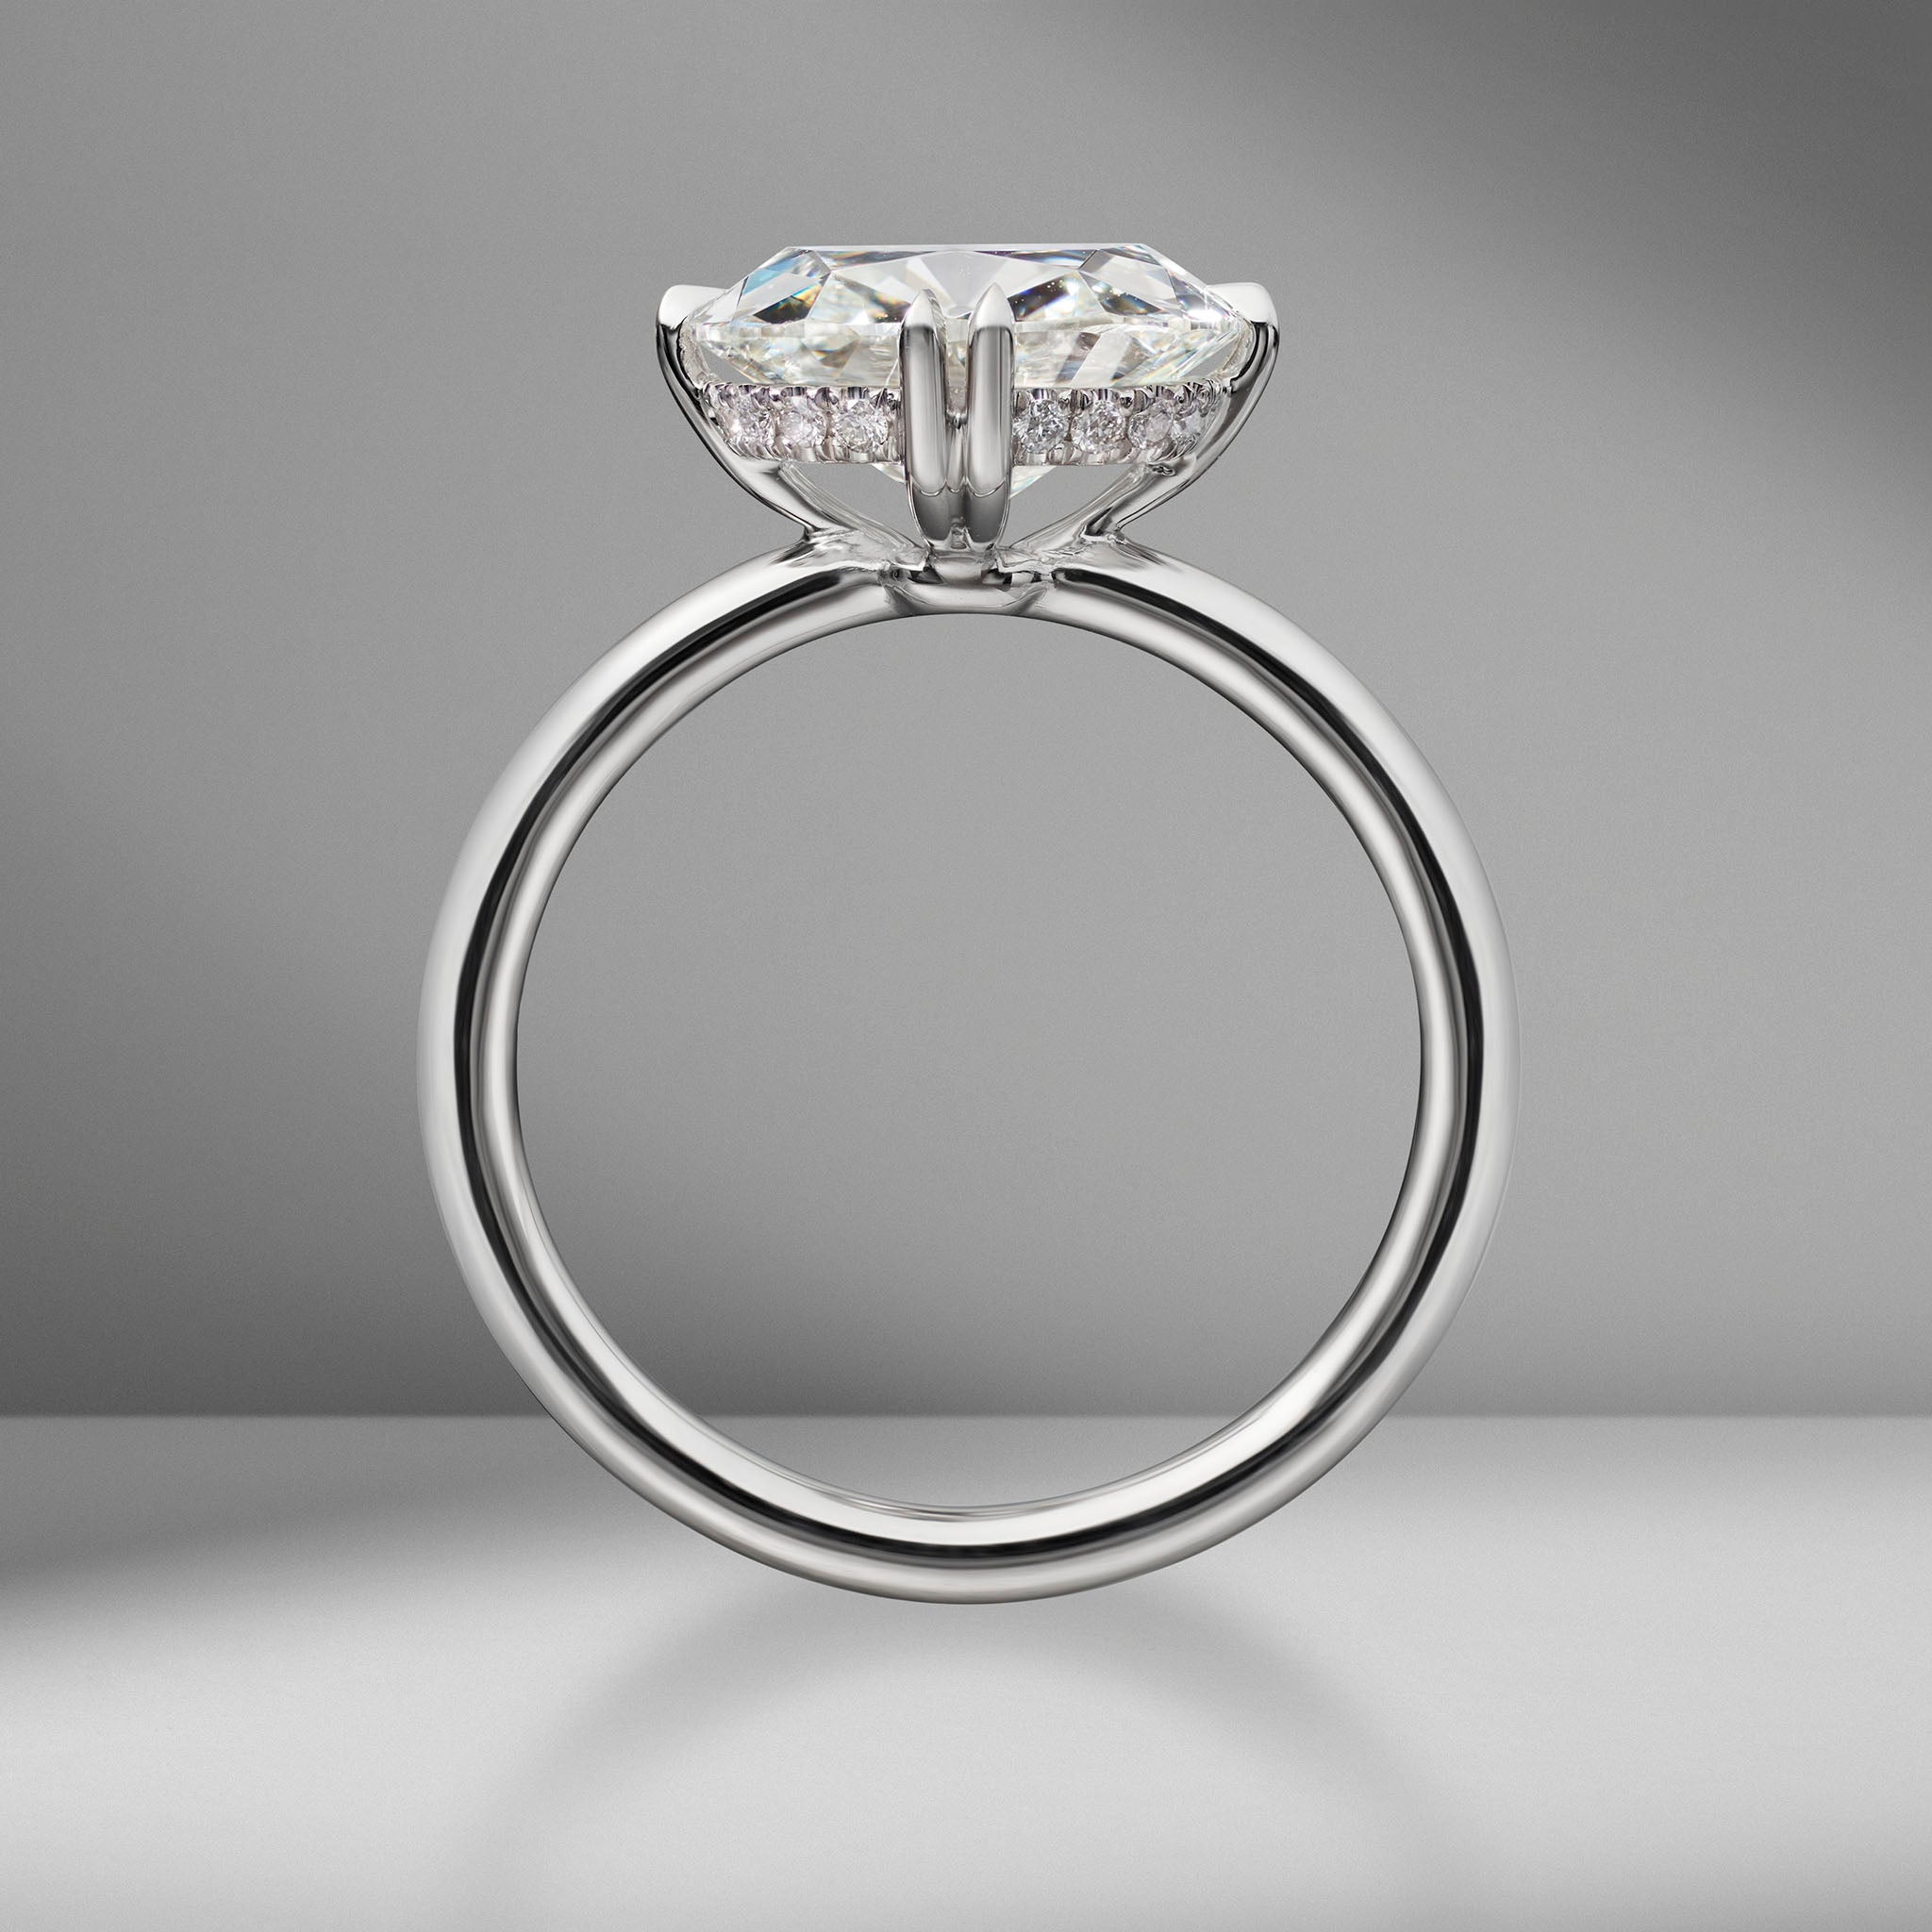 Antique Cushion Cut Solitaire Engagement Ring